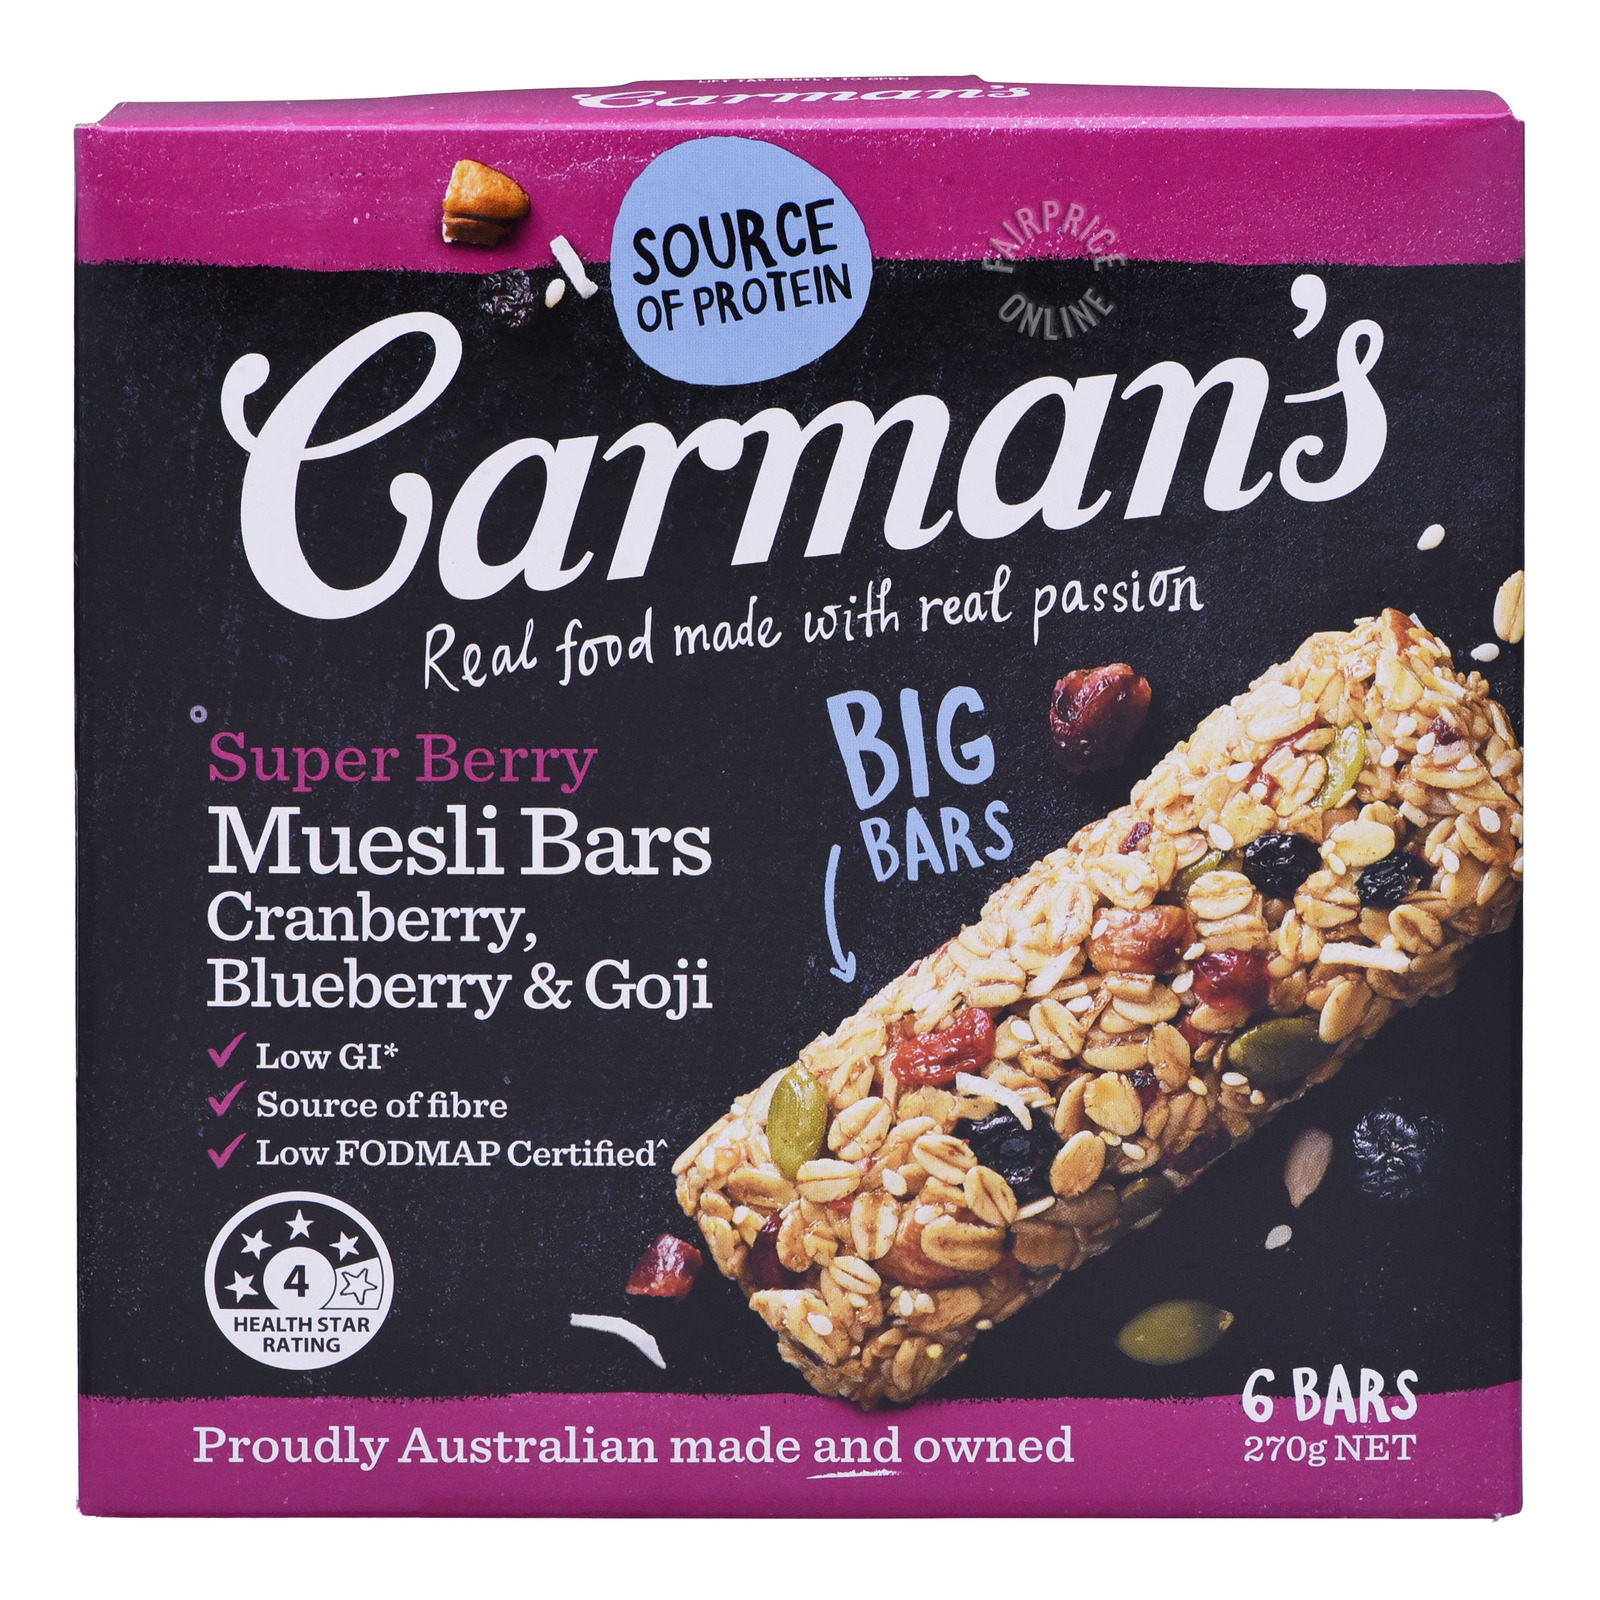 Carman's Muesli Bars - Super Berry